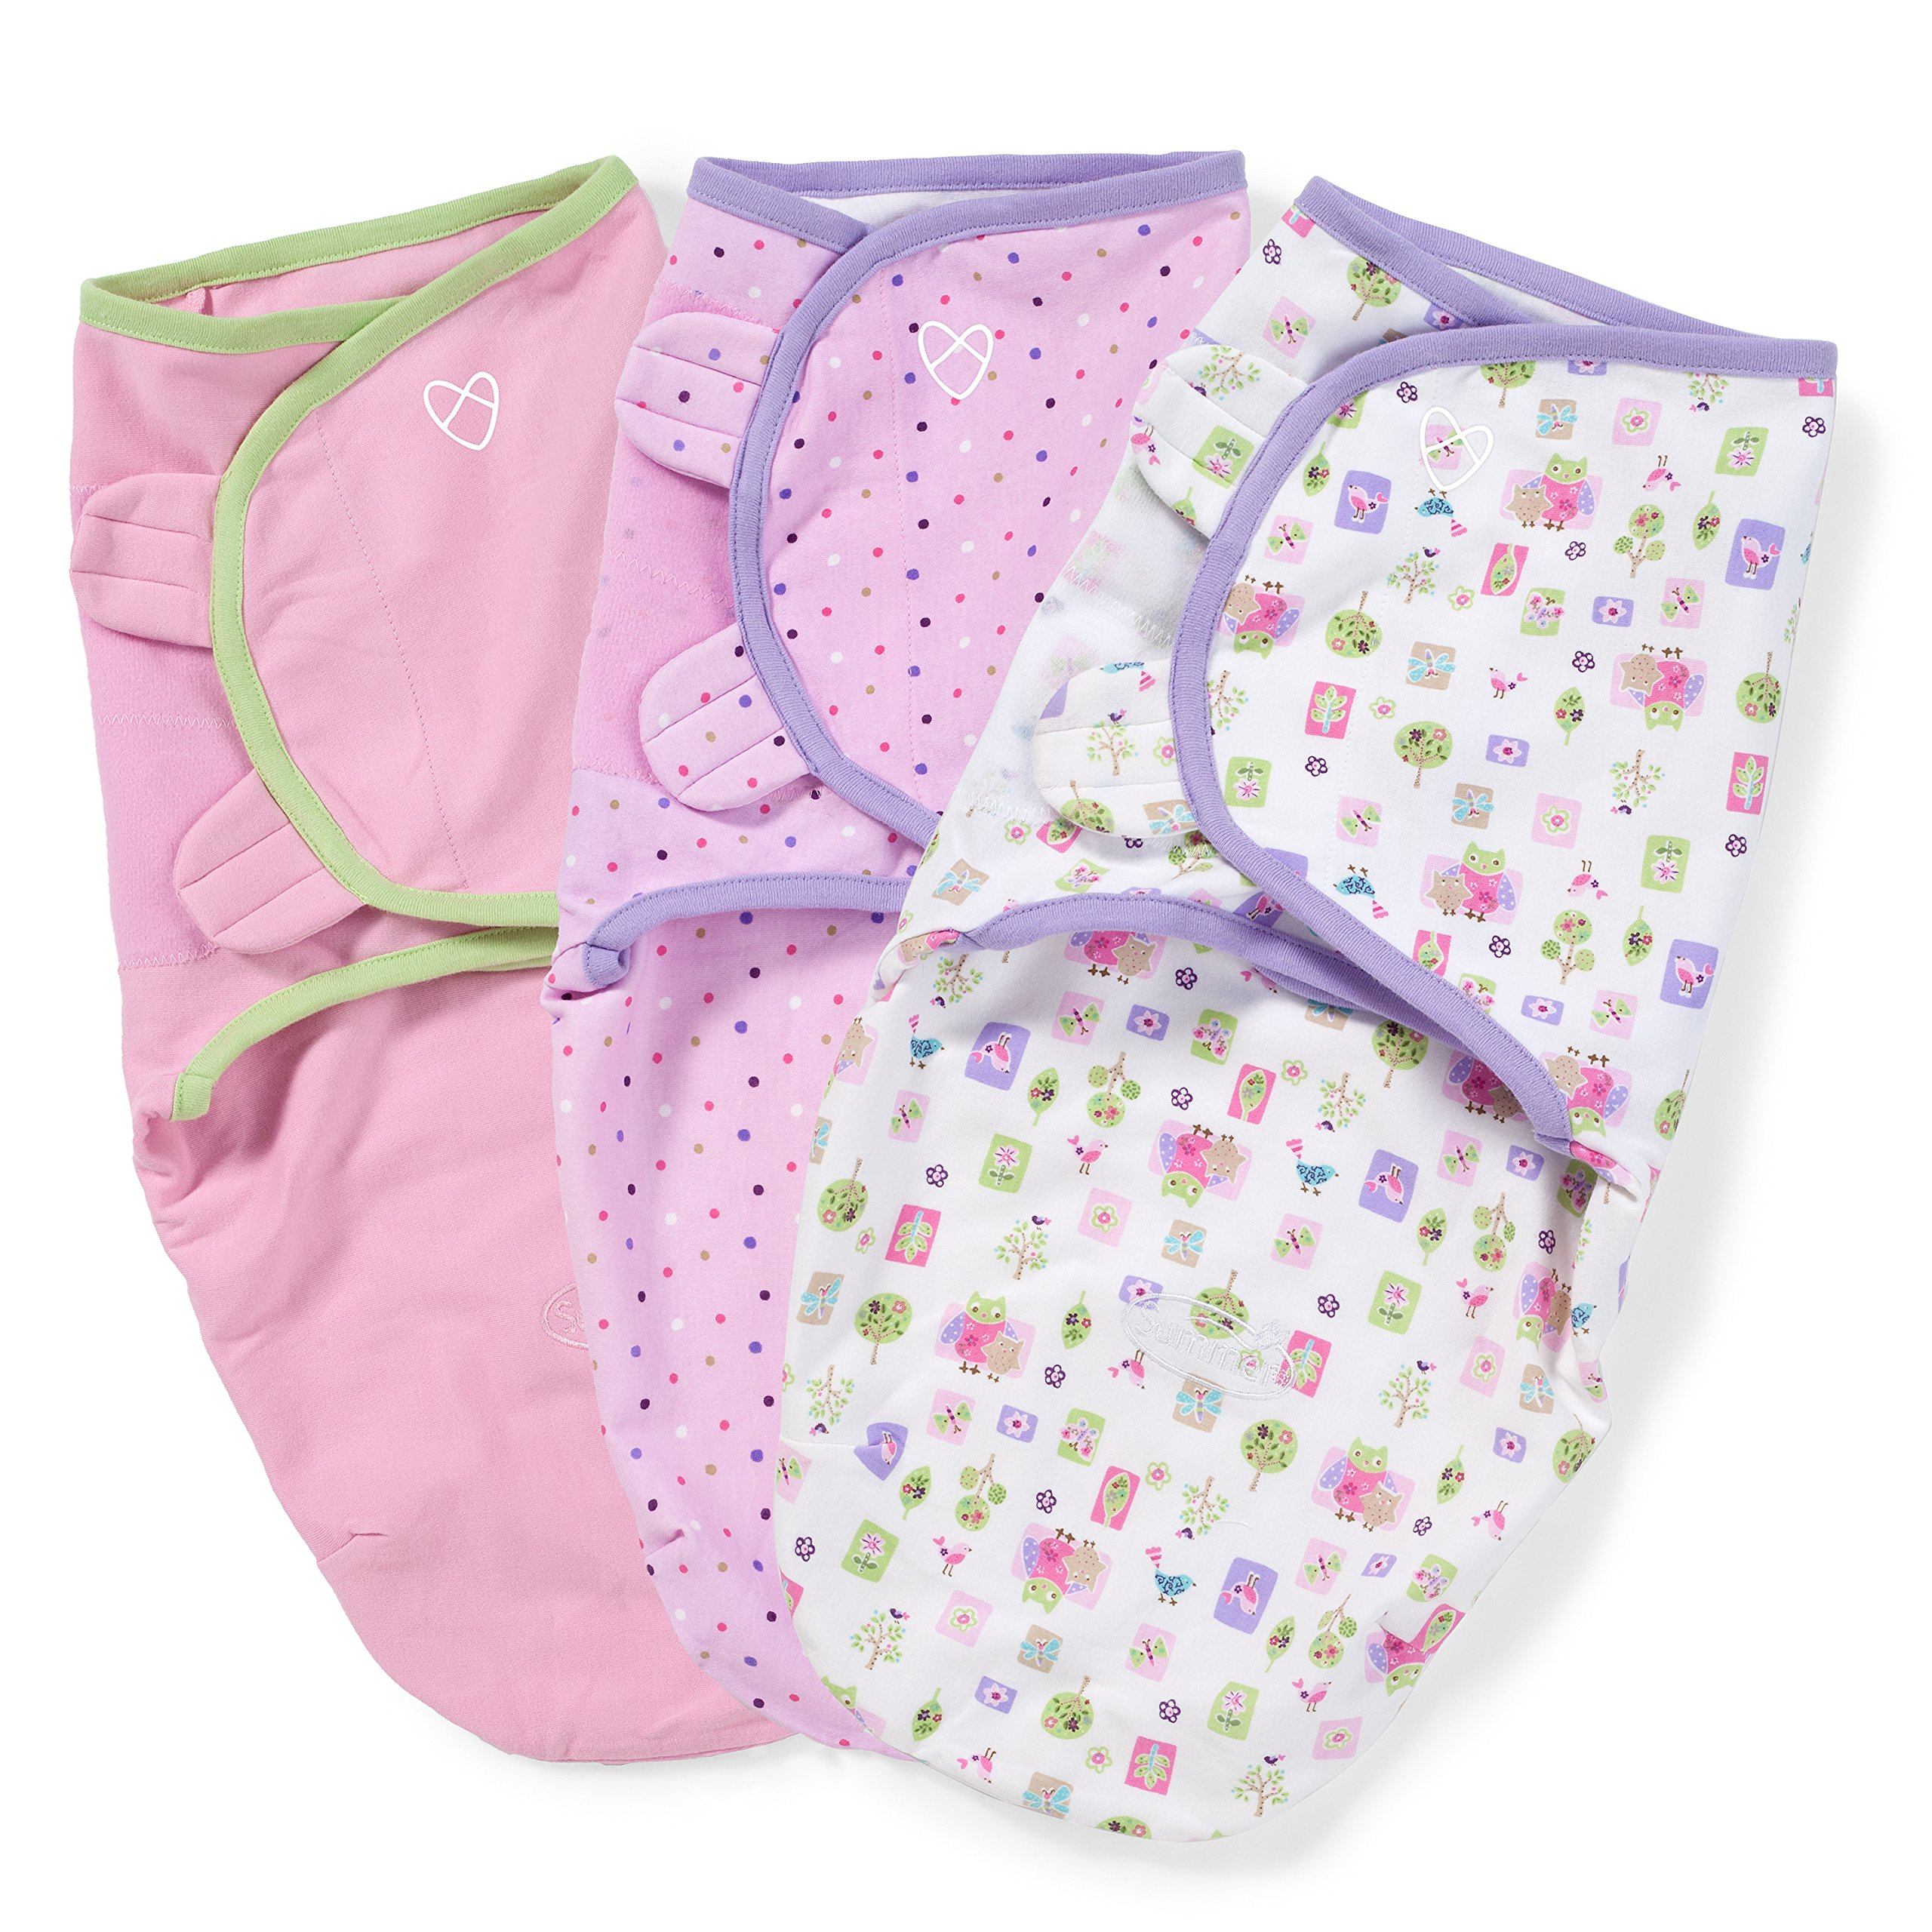 SwaddleMe Original Swaddle 3-PK, Who Loves You (SM)